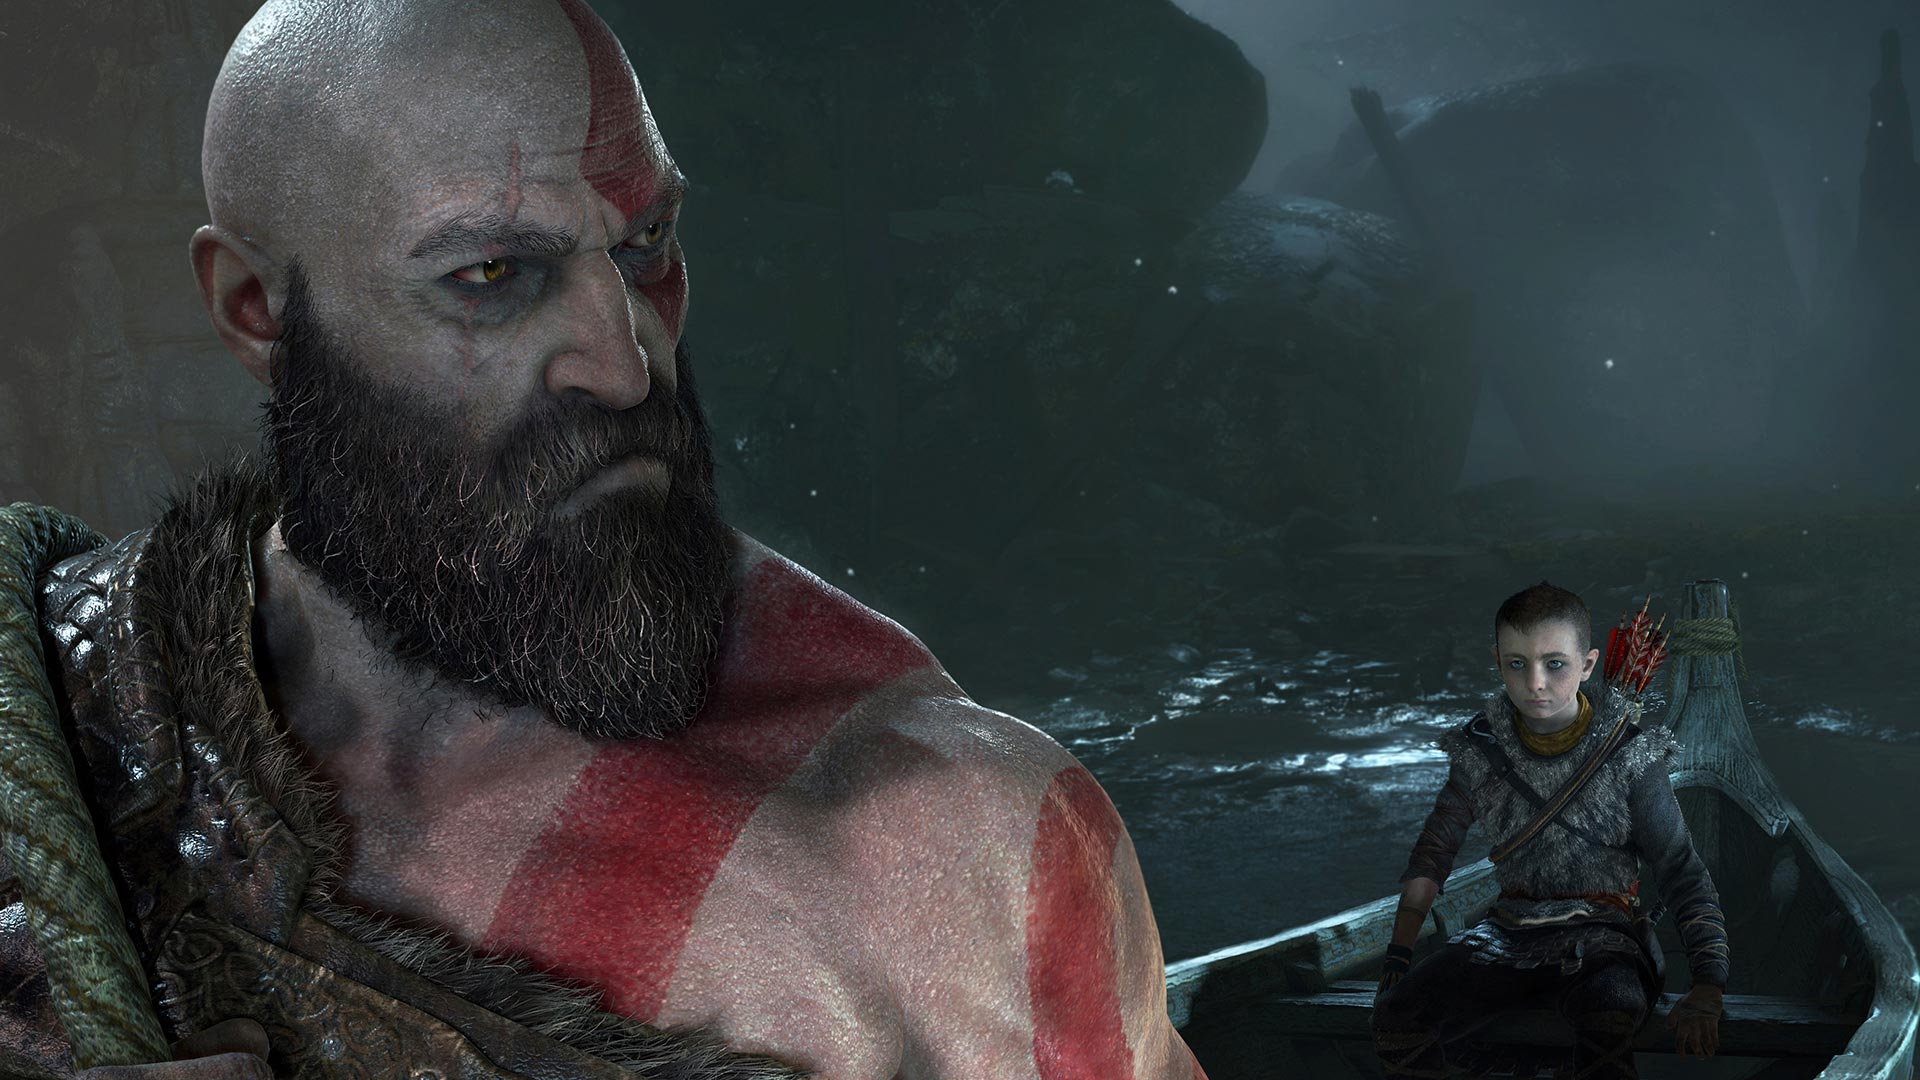 God of War Kratos and Atreus in boat